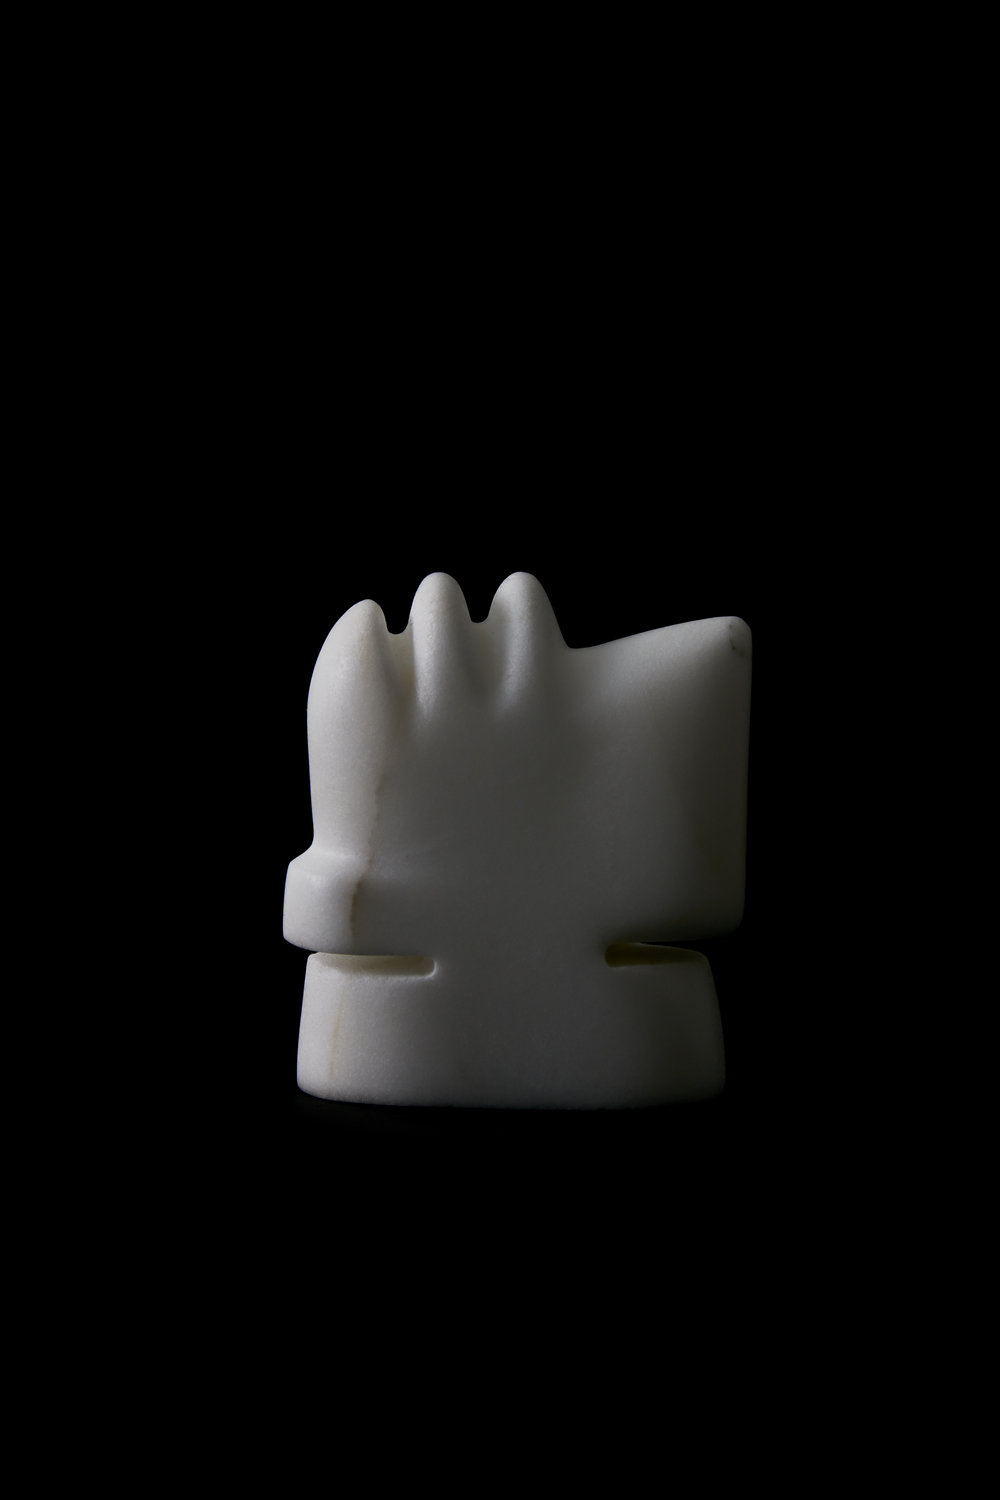 Square Form 1/3, marble, 2017